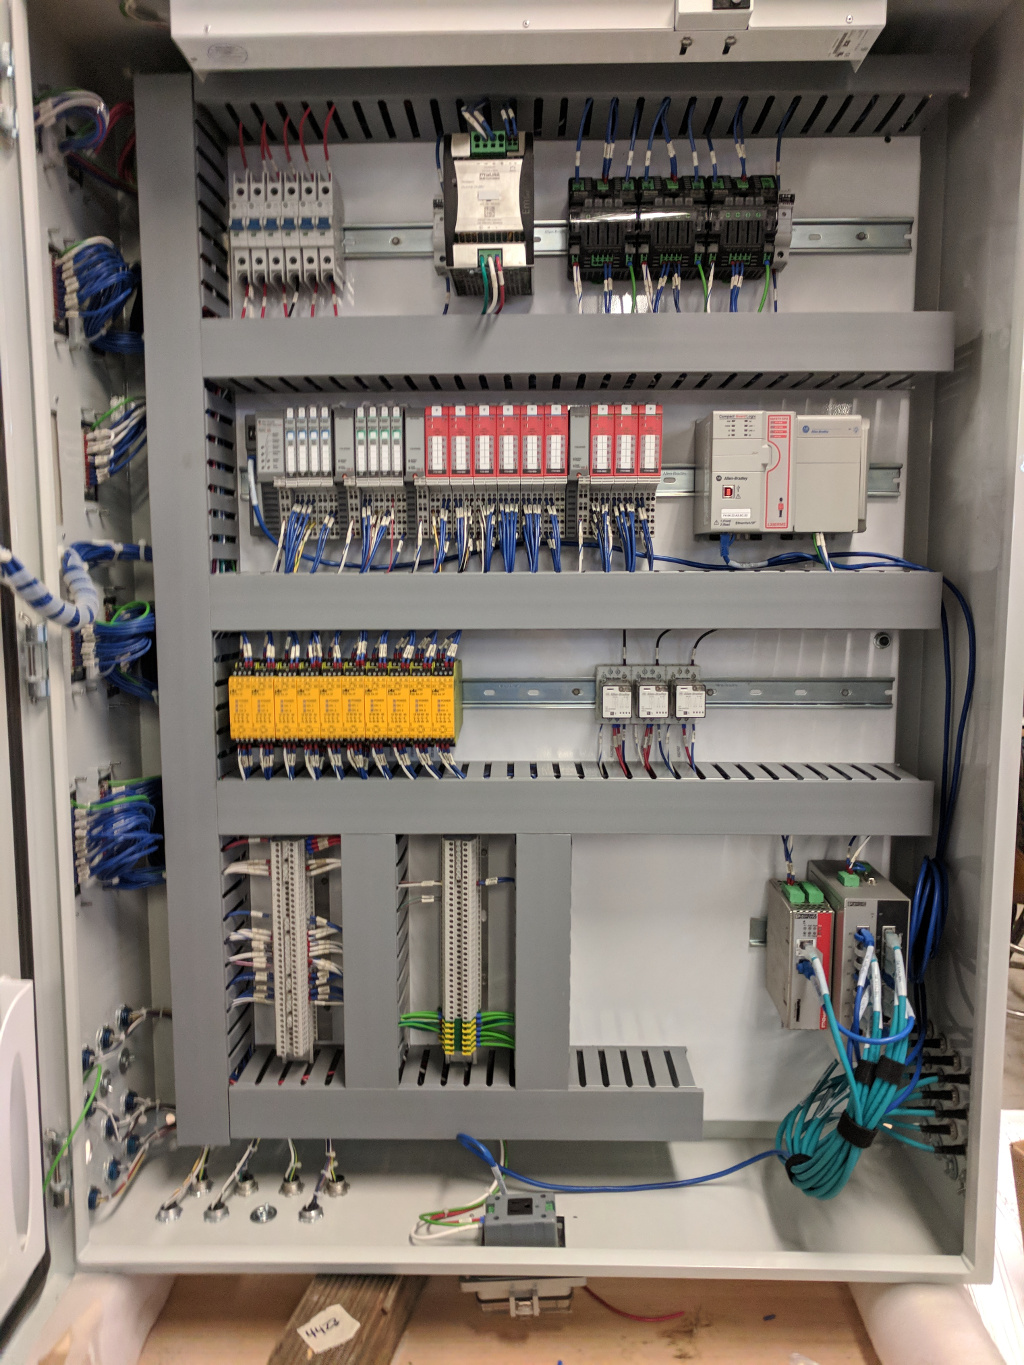 hight resolution of zech engineering panel build machine wiring electrical service panel wiring diagram panel wiring machine